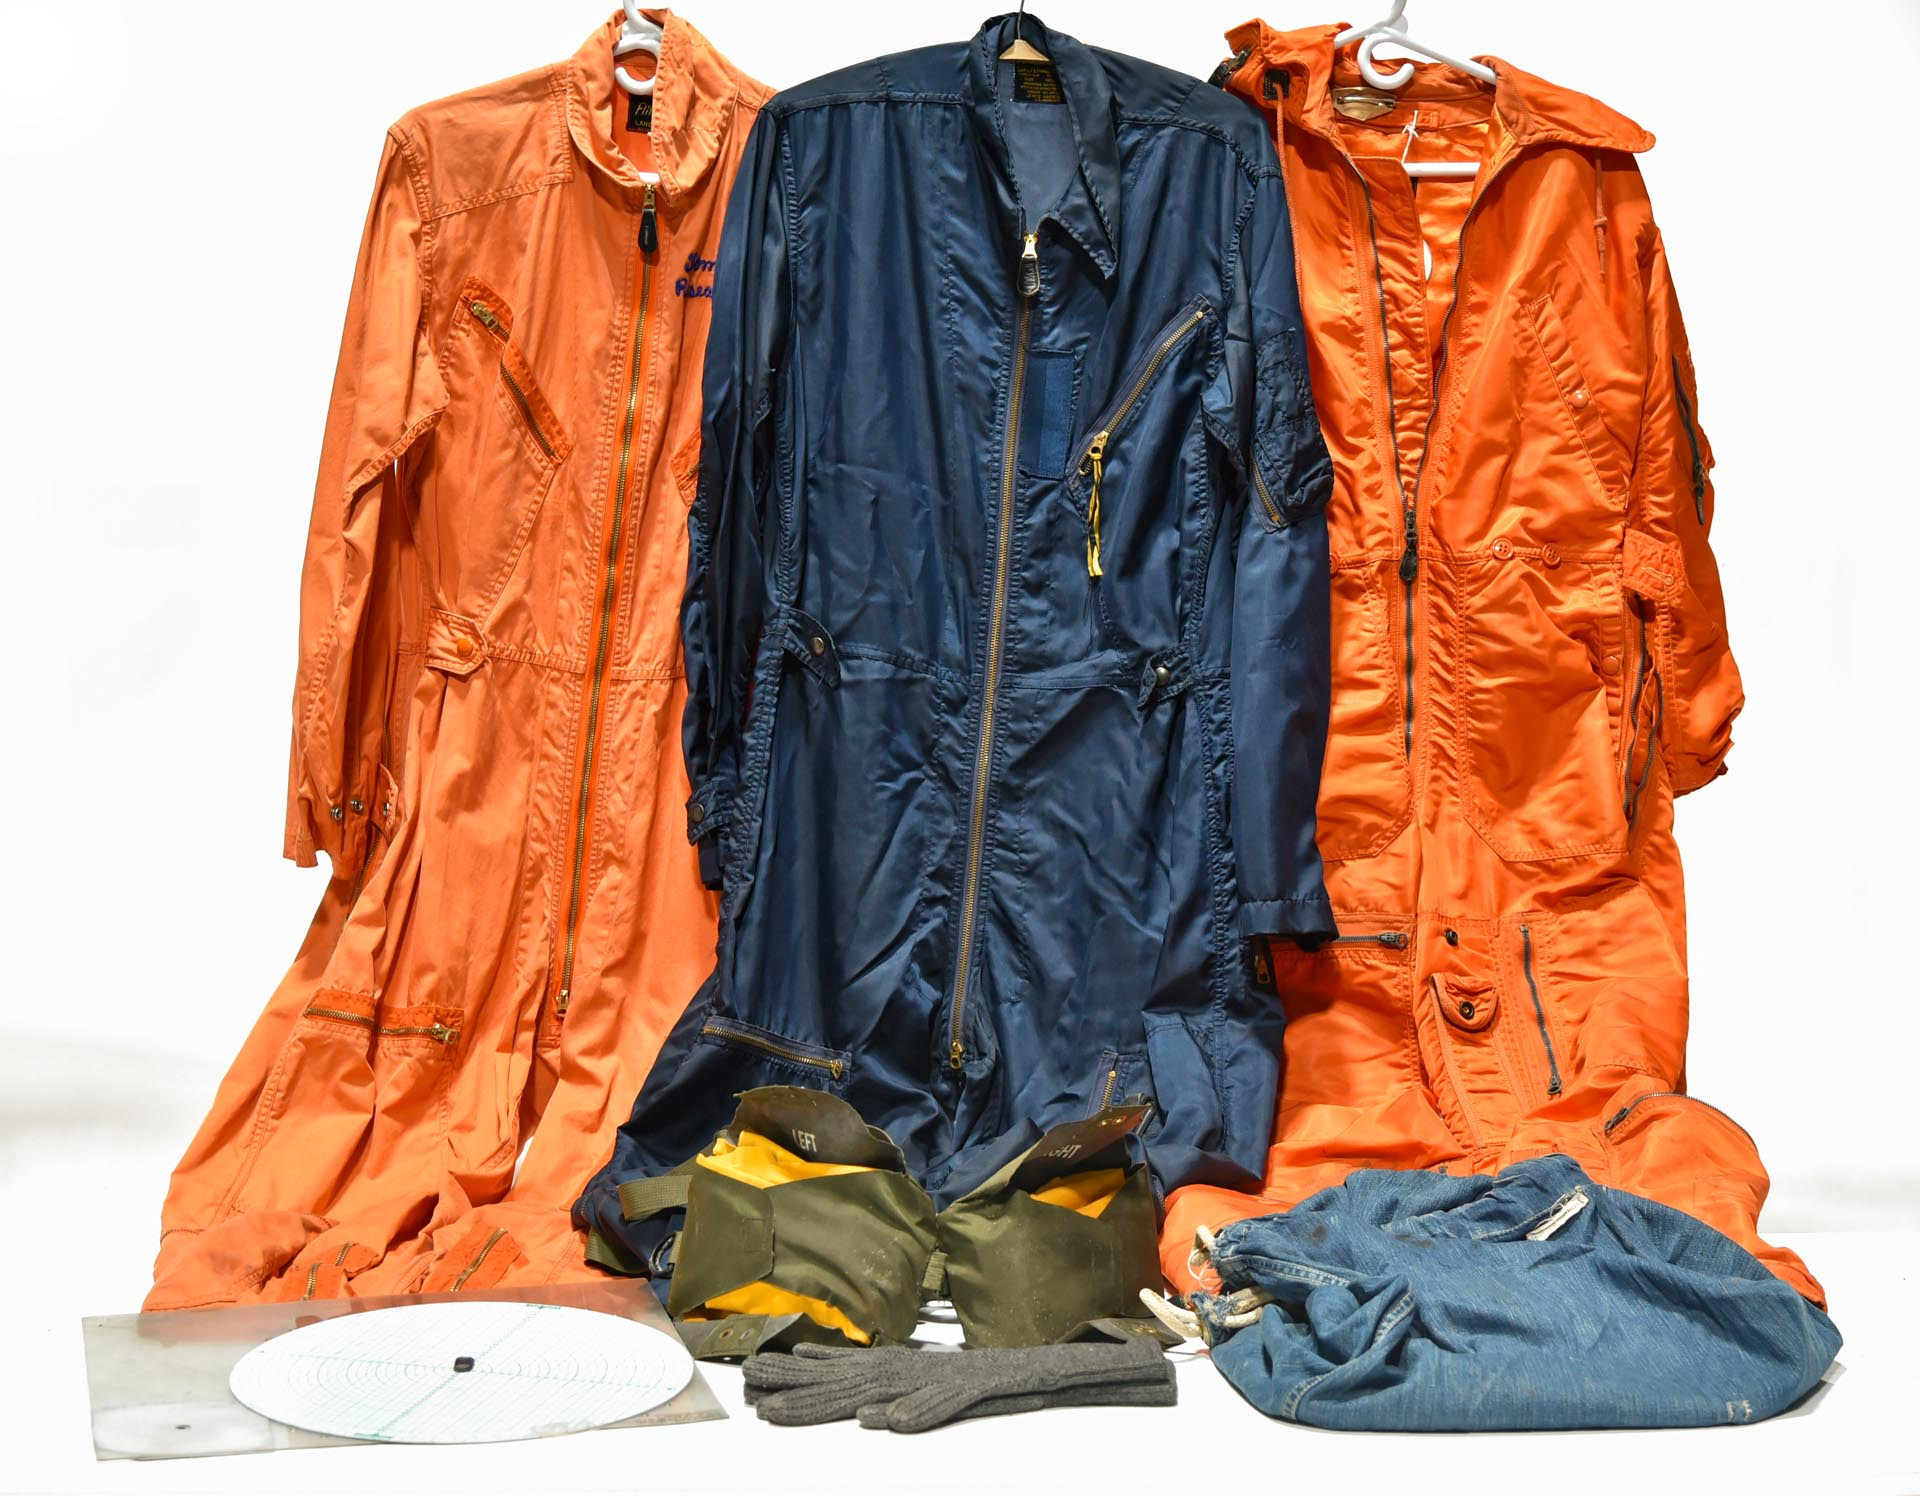 Lot of Cold War U.S. Military Flight Suits, Navigation Plotting Board and Denim Work Clothes